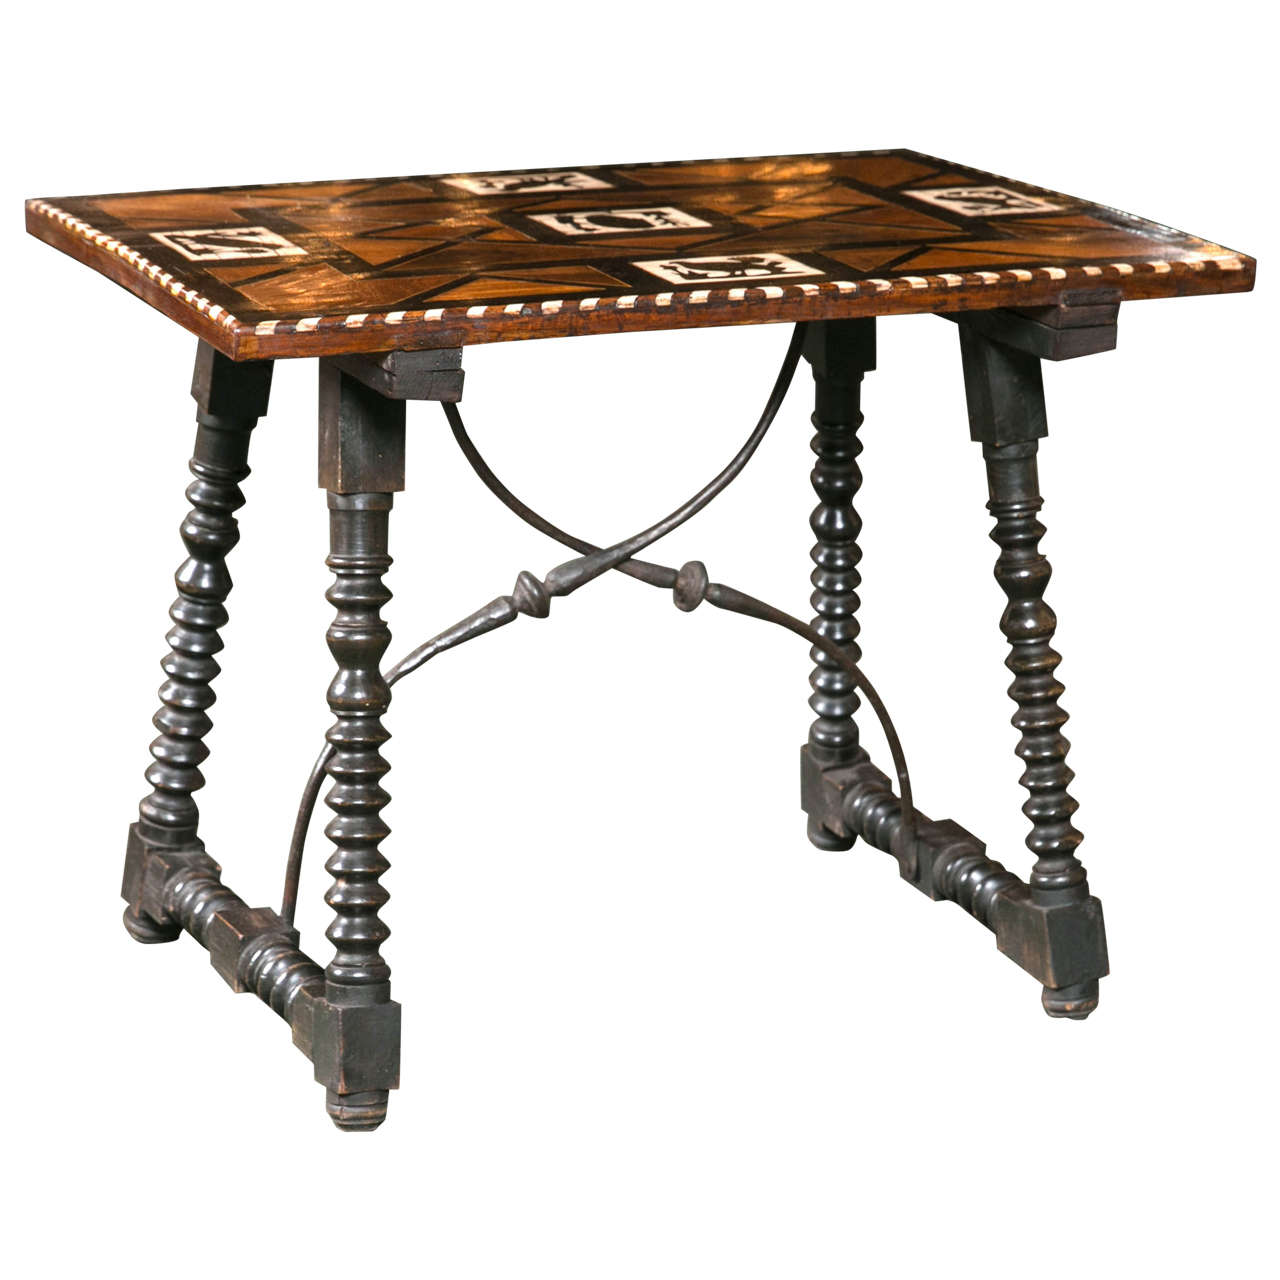 Spanish rosewood and bone low table at 1stdibs for Table in spanish